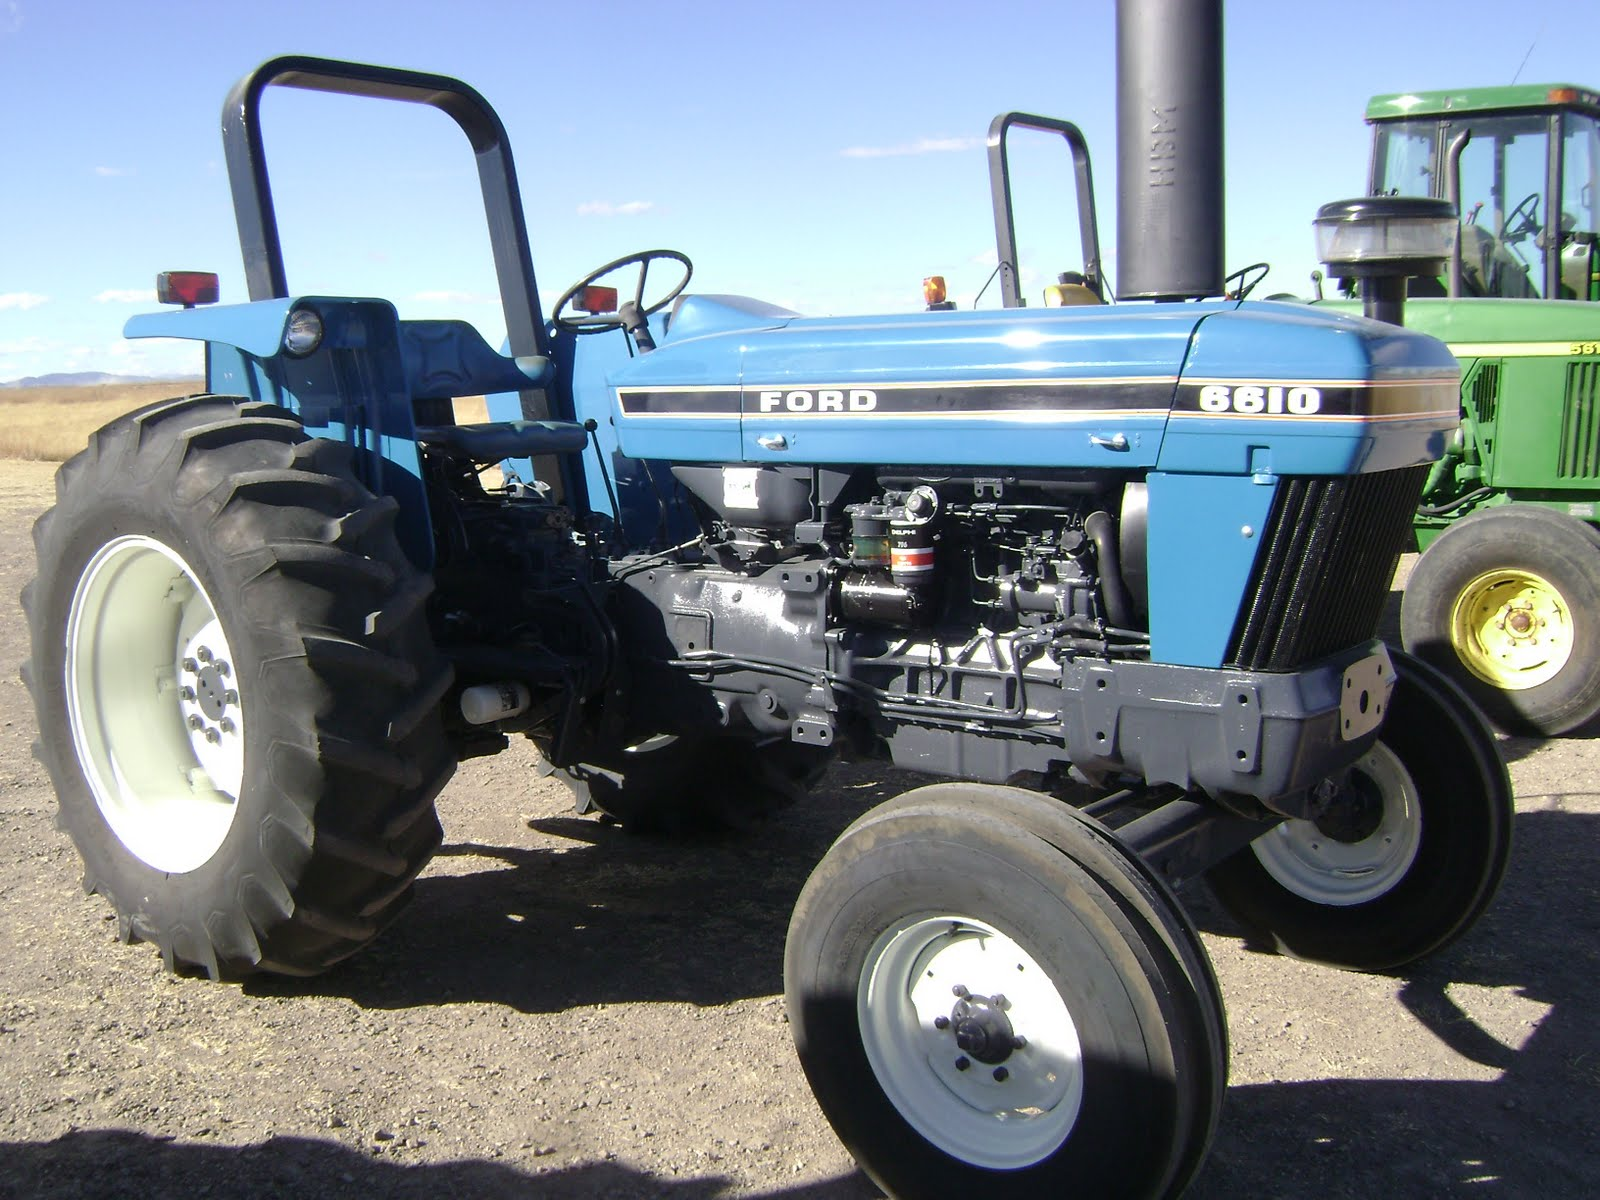 5610 ford tractor wiring diagram new holland tc30 wiring